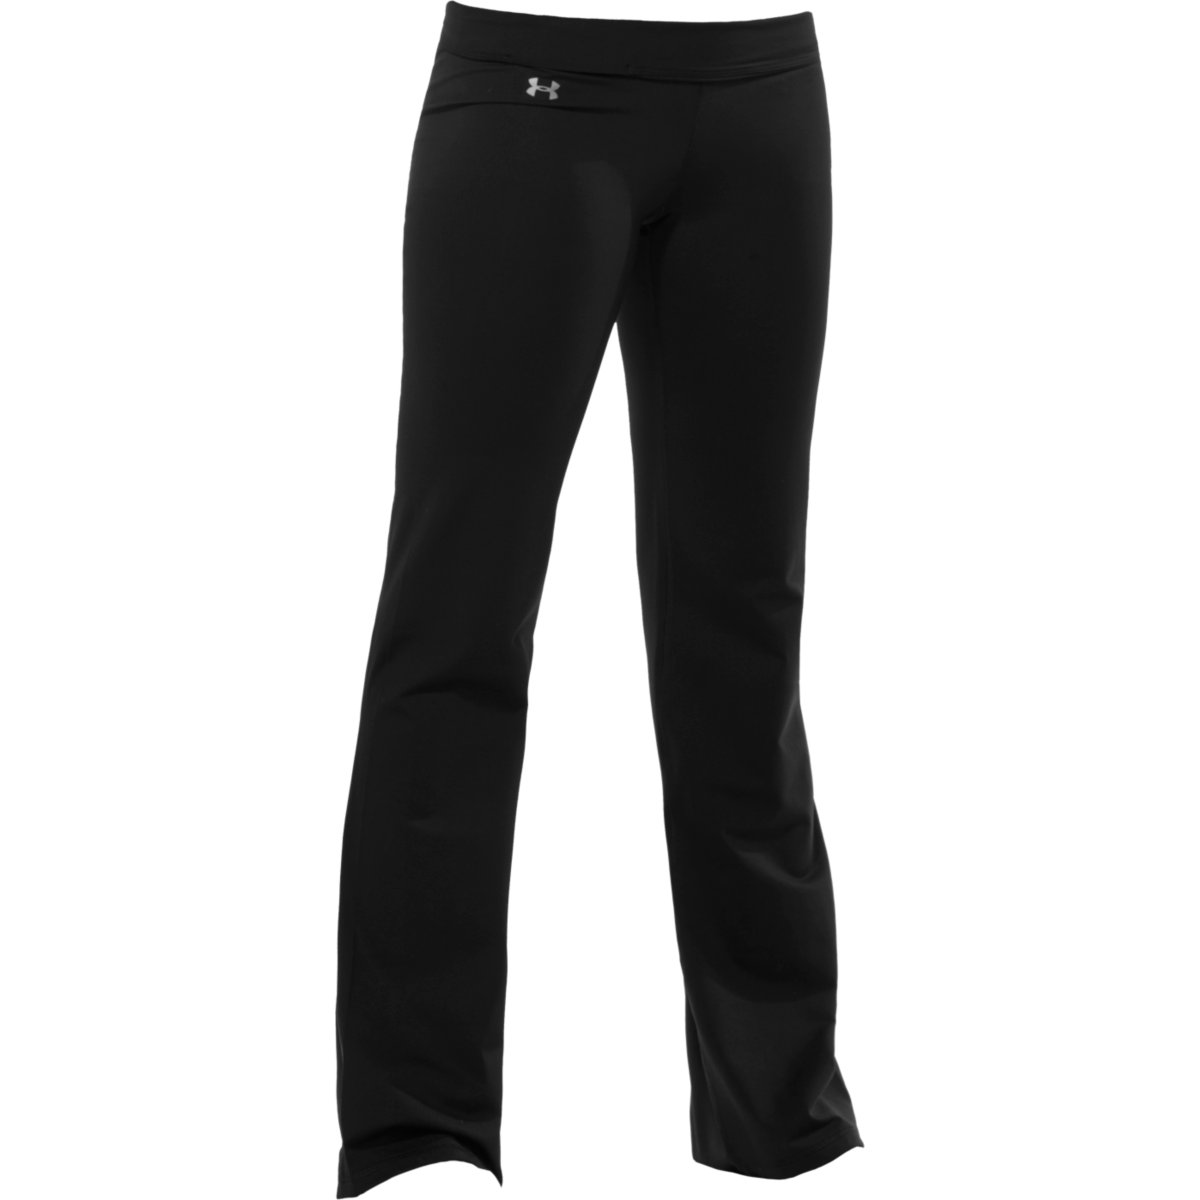 Under Armour Women's UA Perfect Pant 31.5 Inch